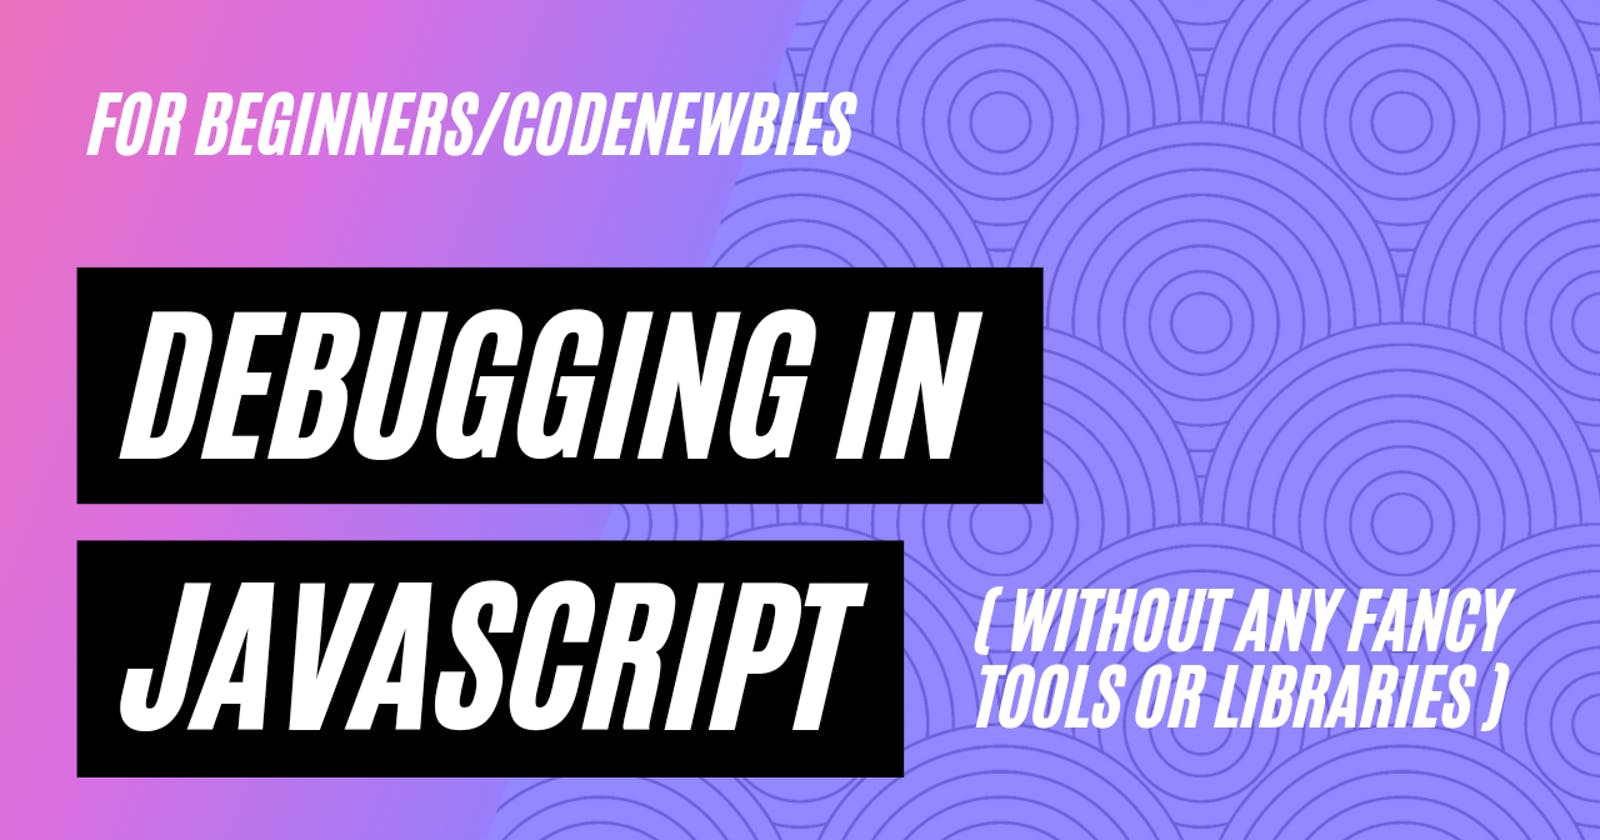 DEBUGGING IN JAVASCRIPT - without fancy tools (for beginners/codeNewbies)